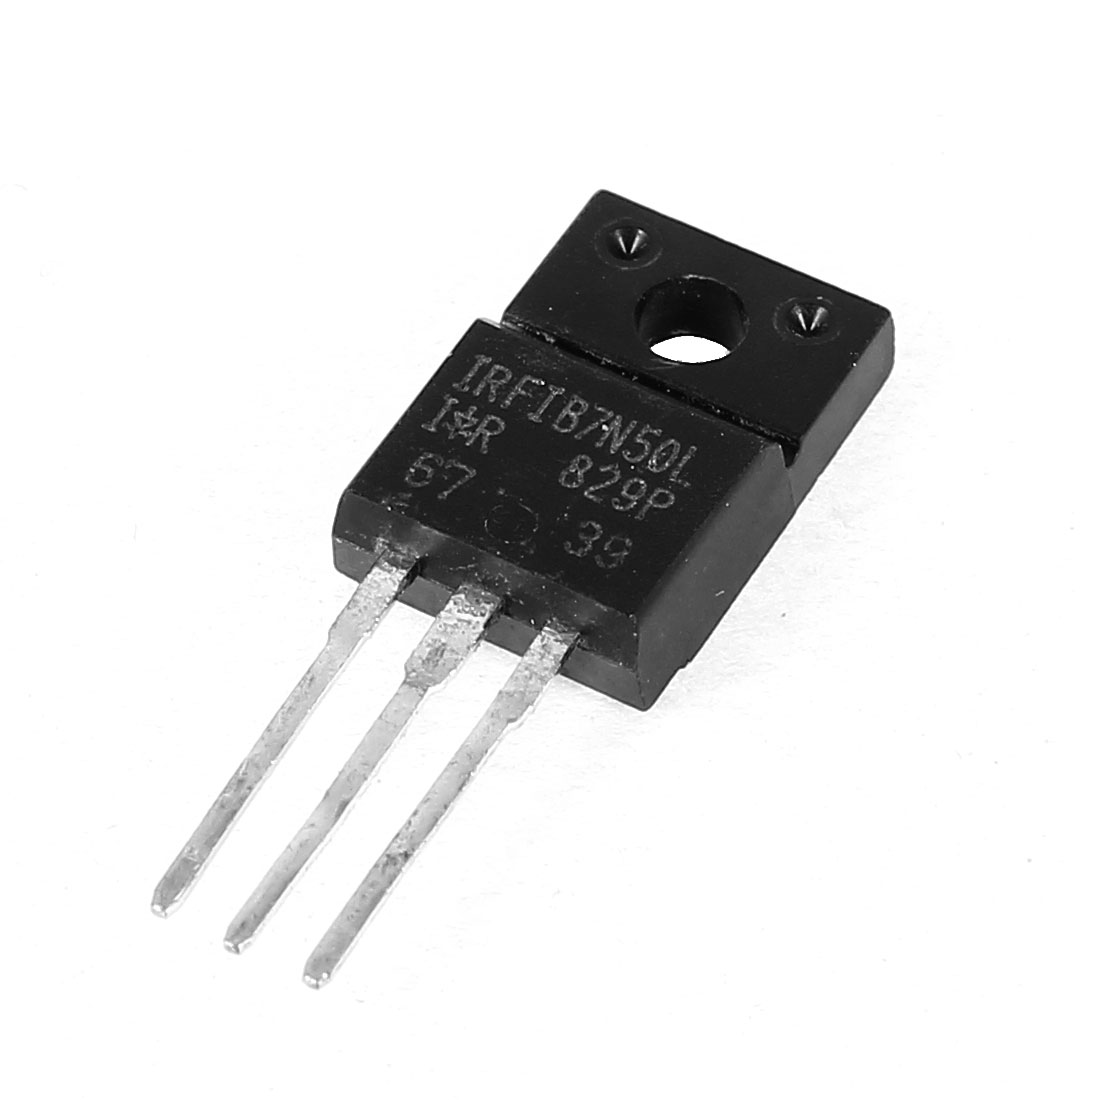 IRFIB7N50L High Voltage Semiconductor 3 Pin PNP Power Transistor TO-220